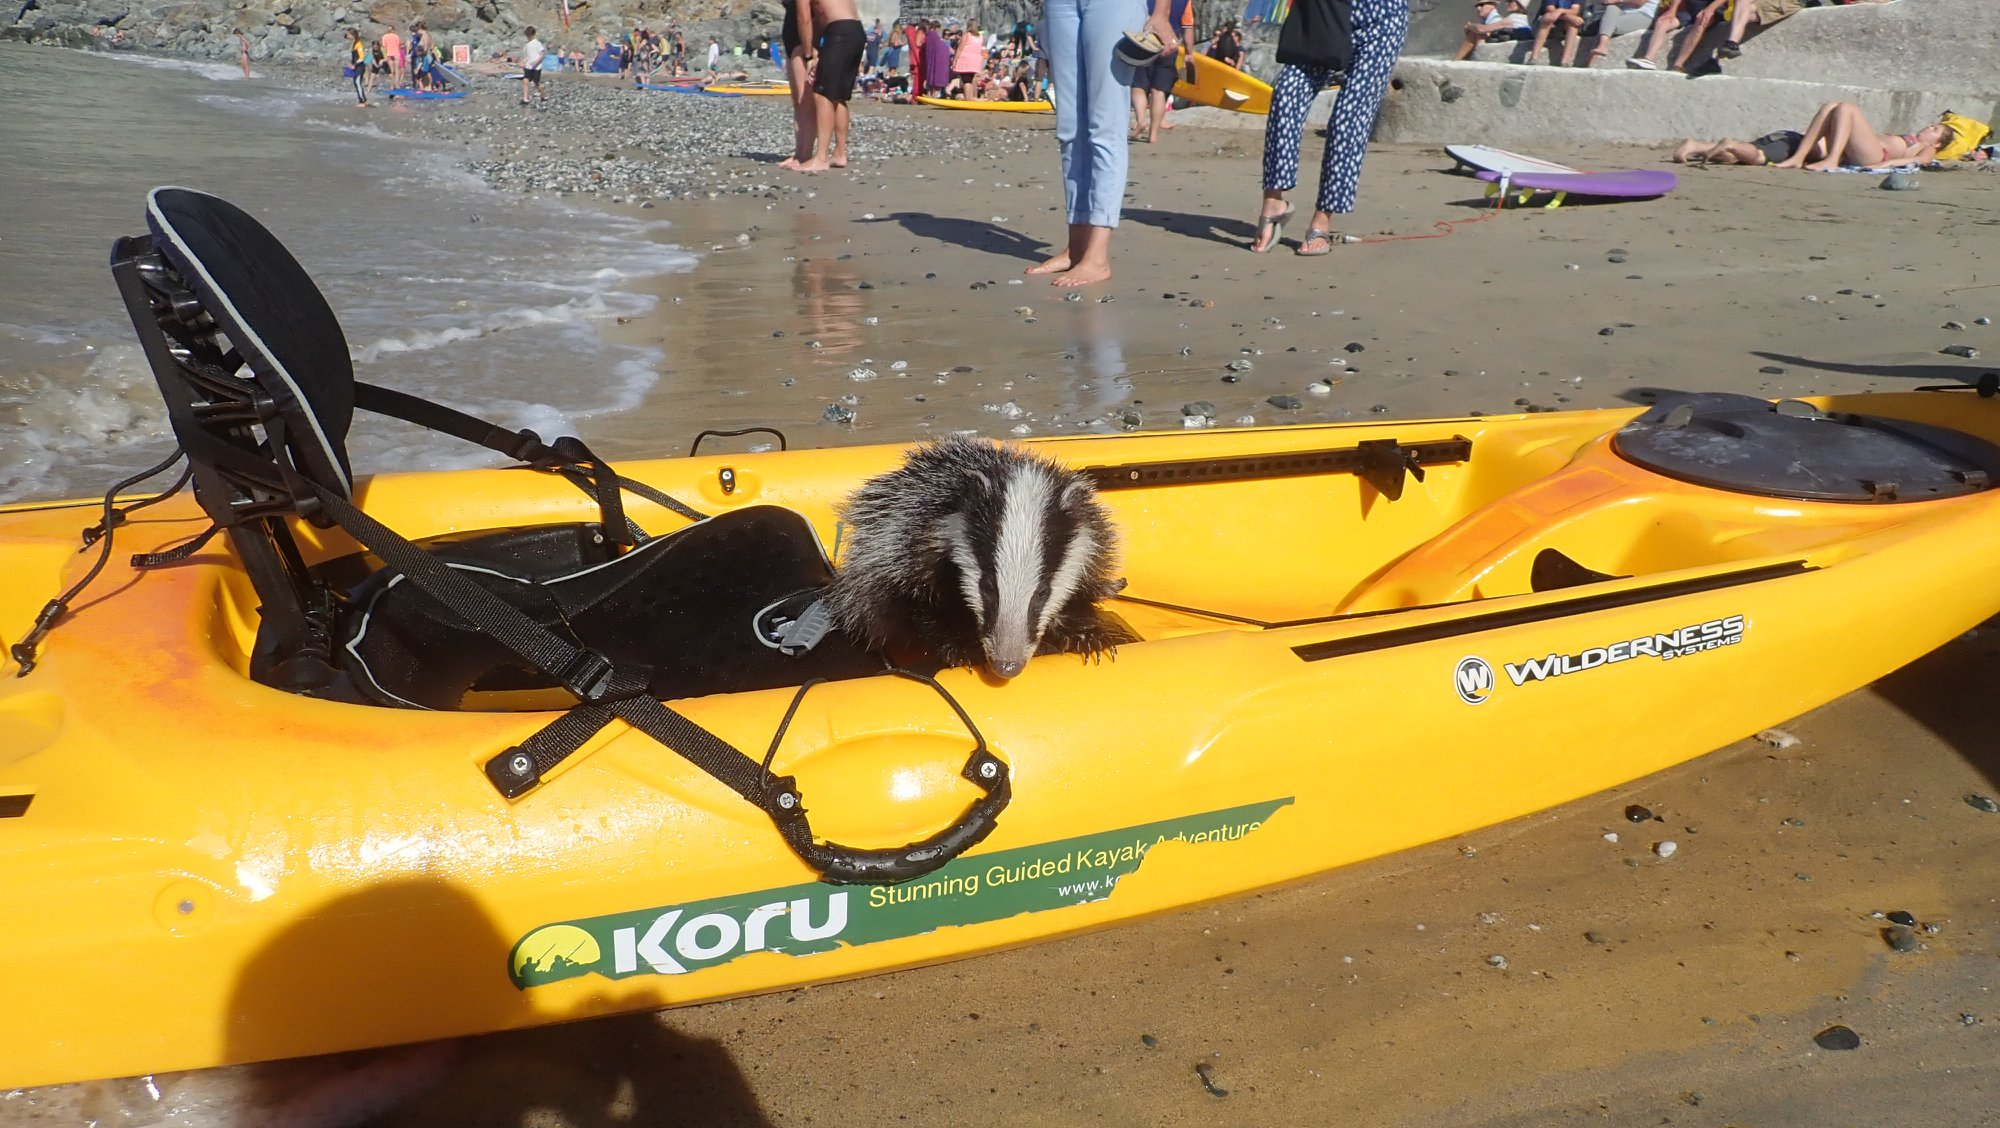 Badger rescue by Koru Kayaking